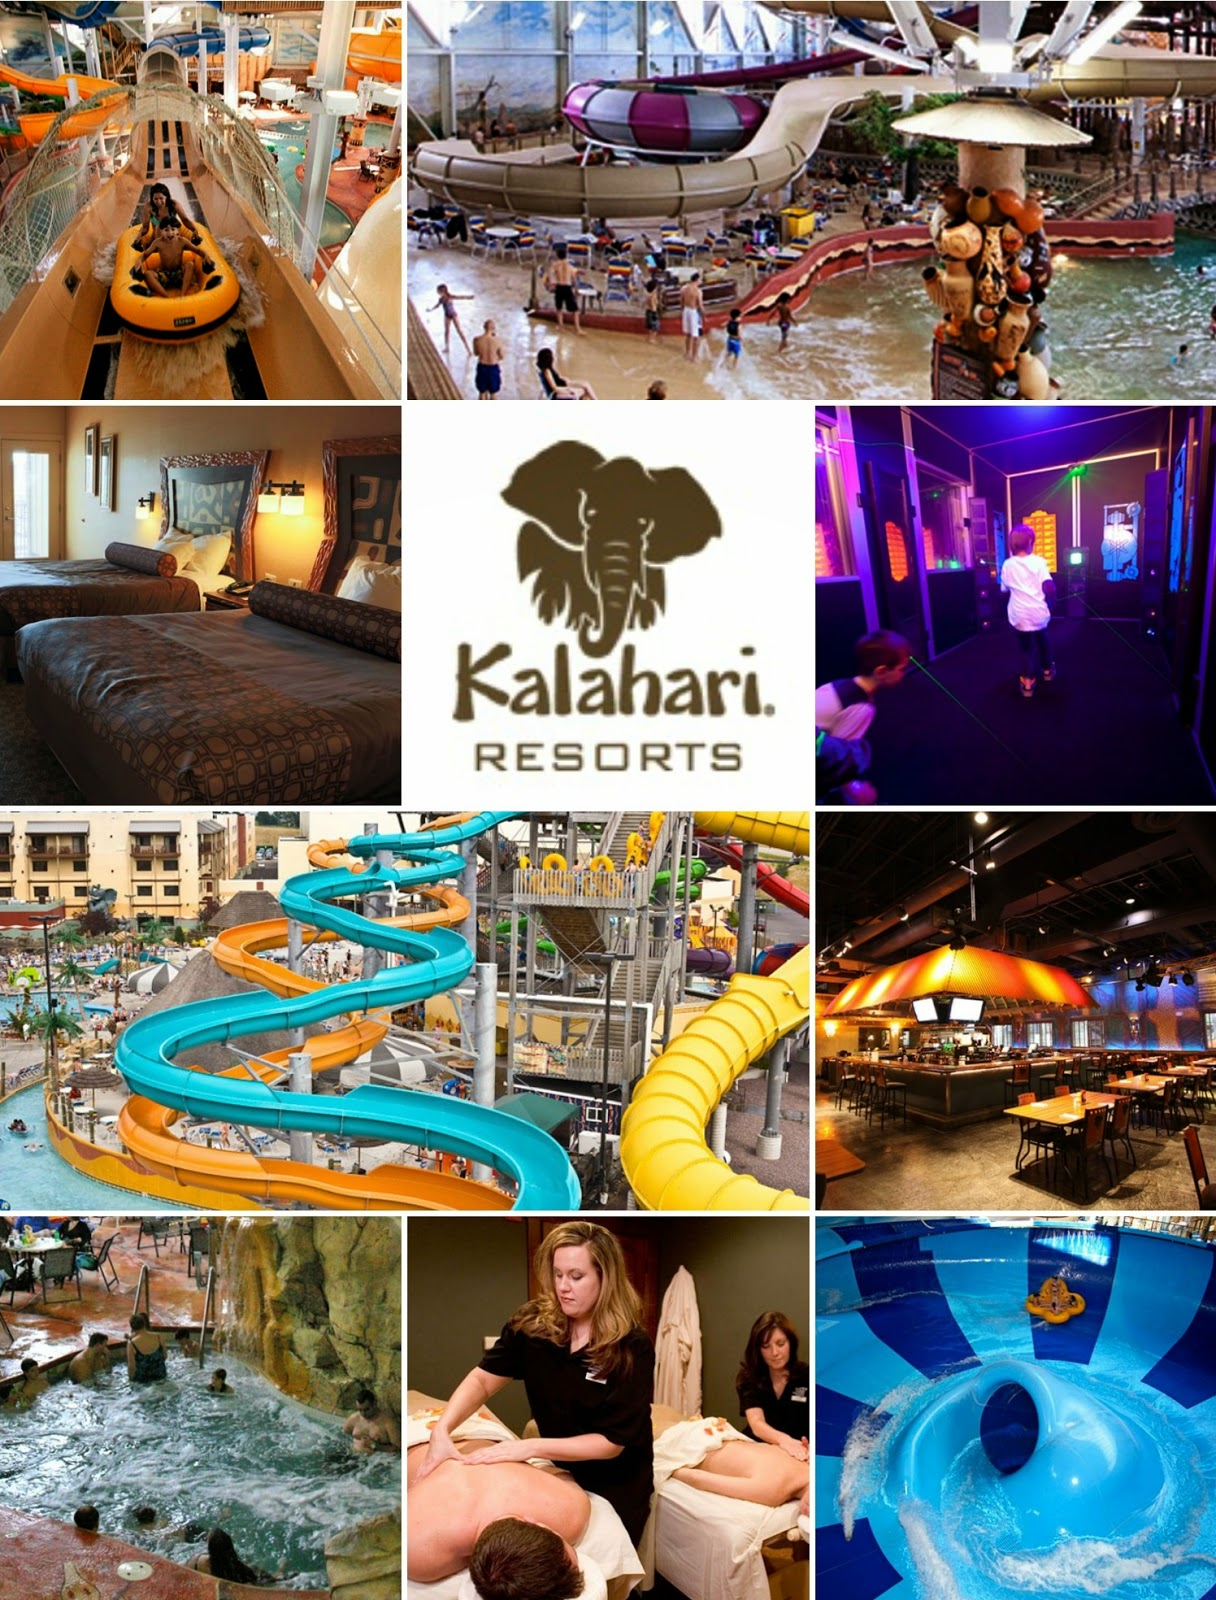 Kalahari resort discount coupons